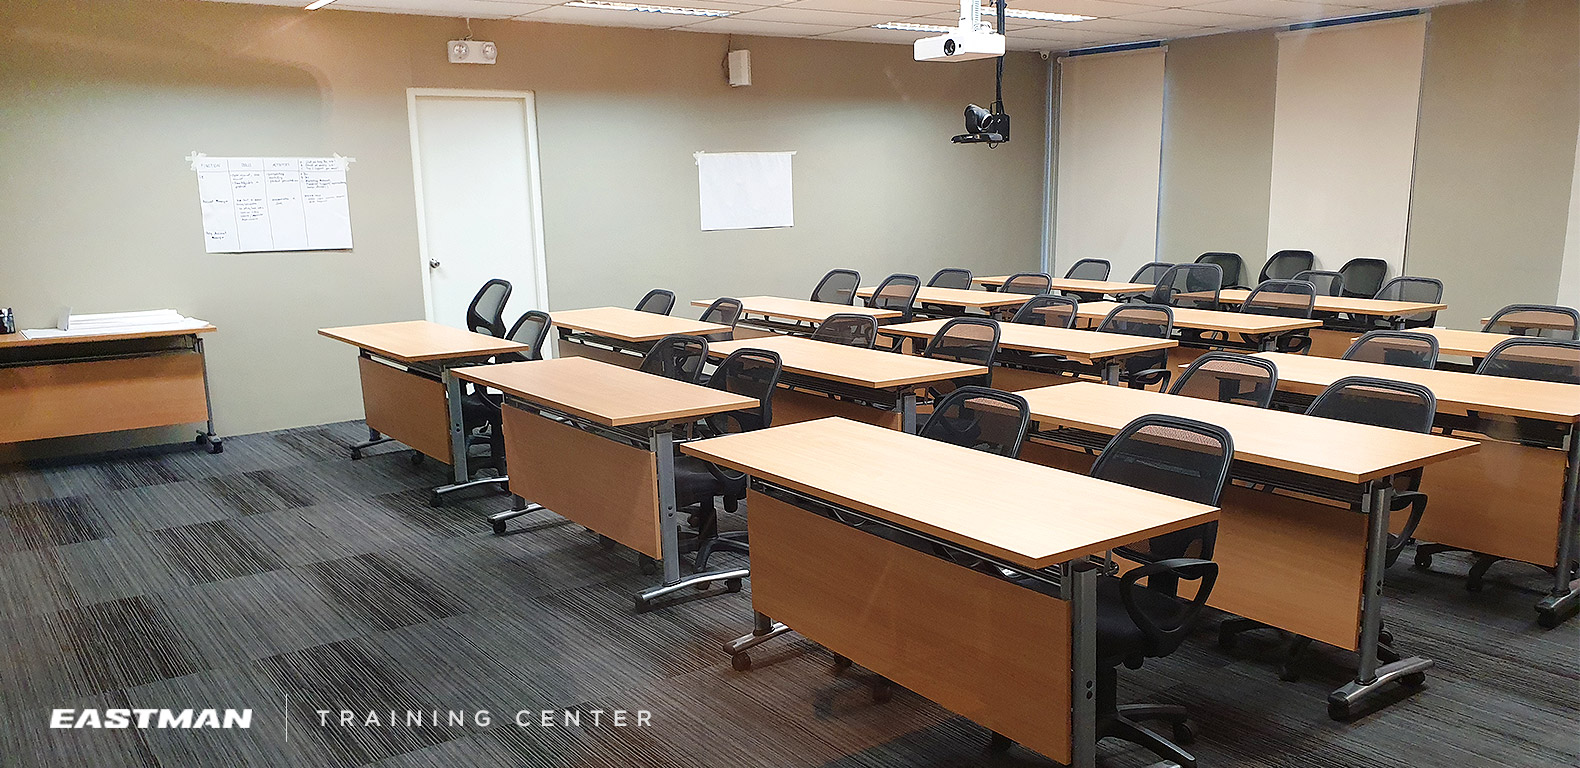 eastman-about-training-center